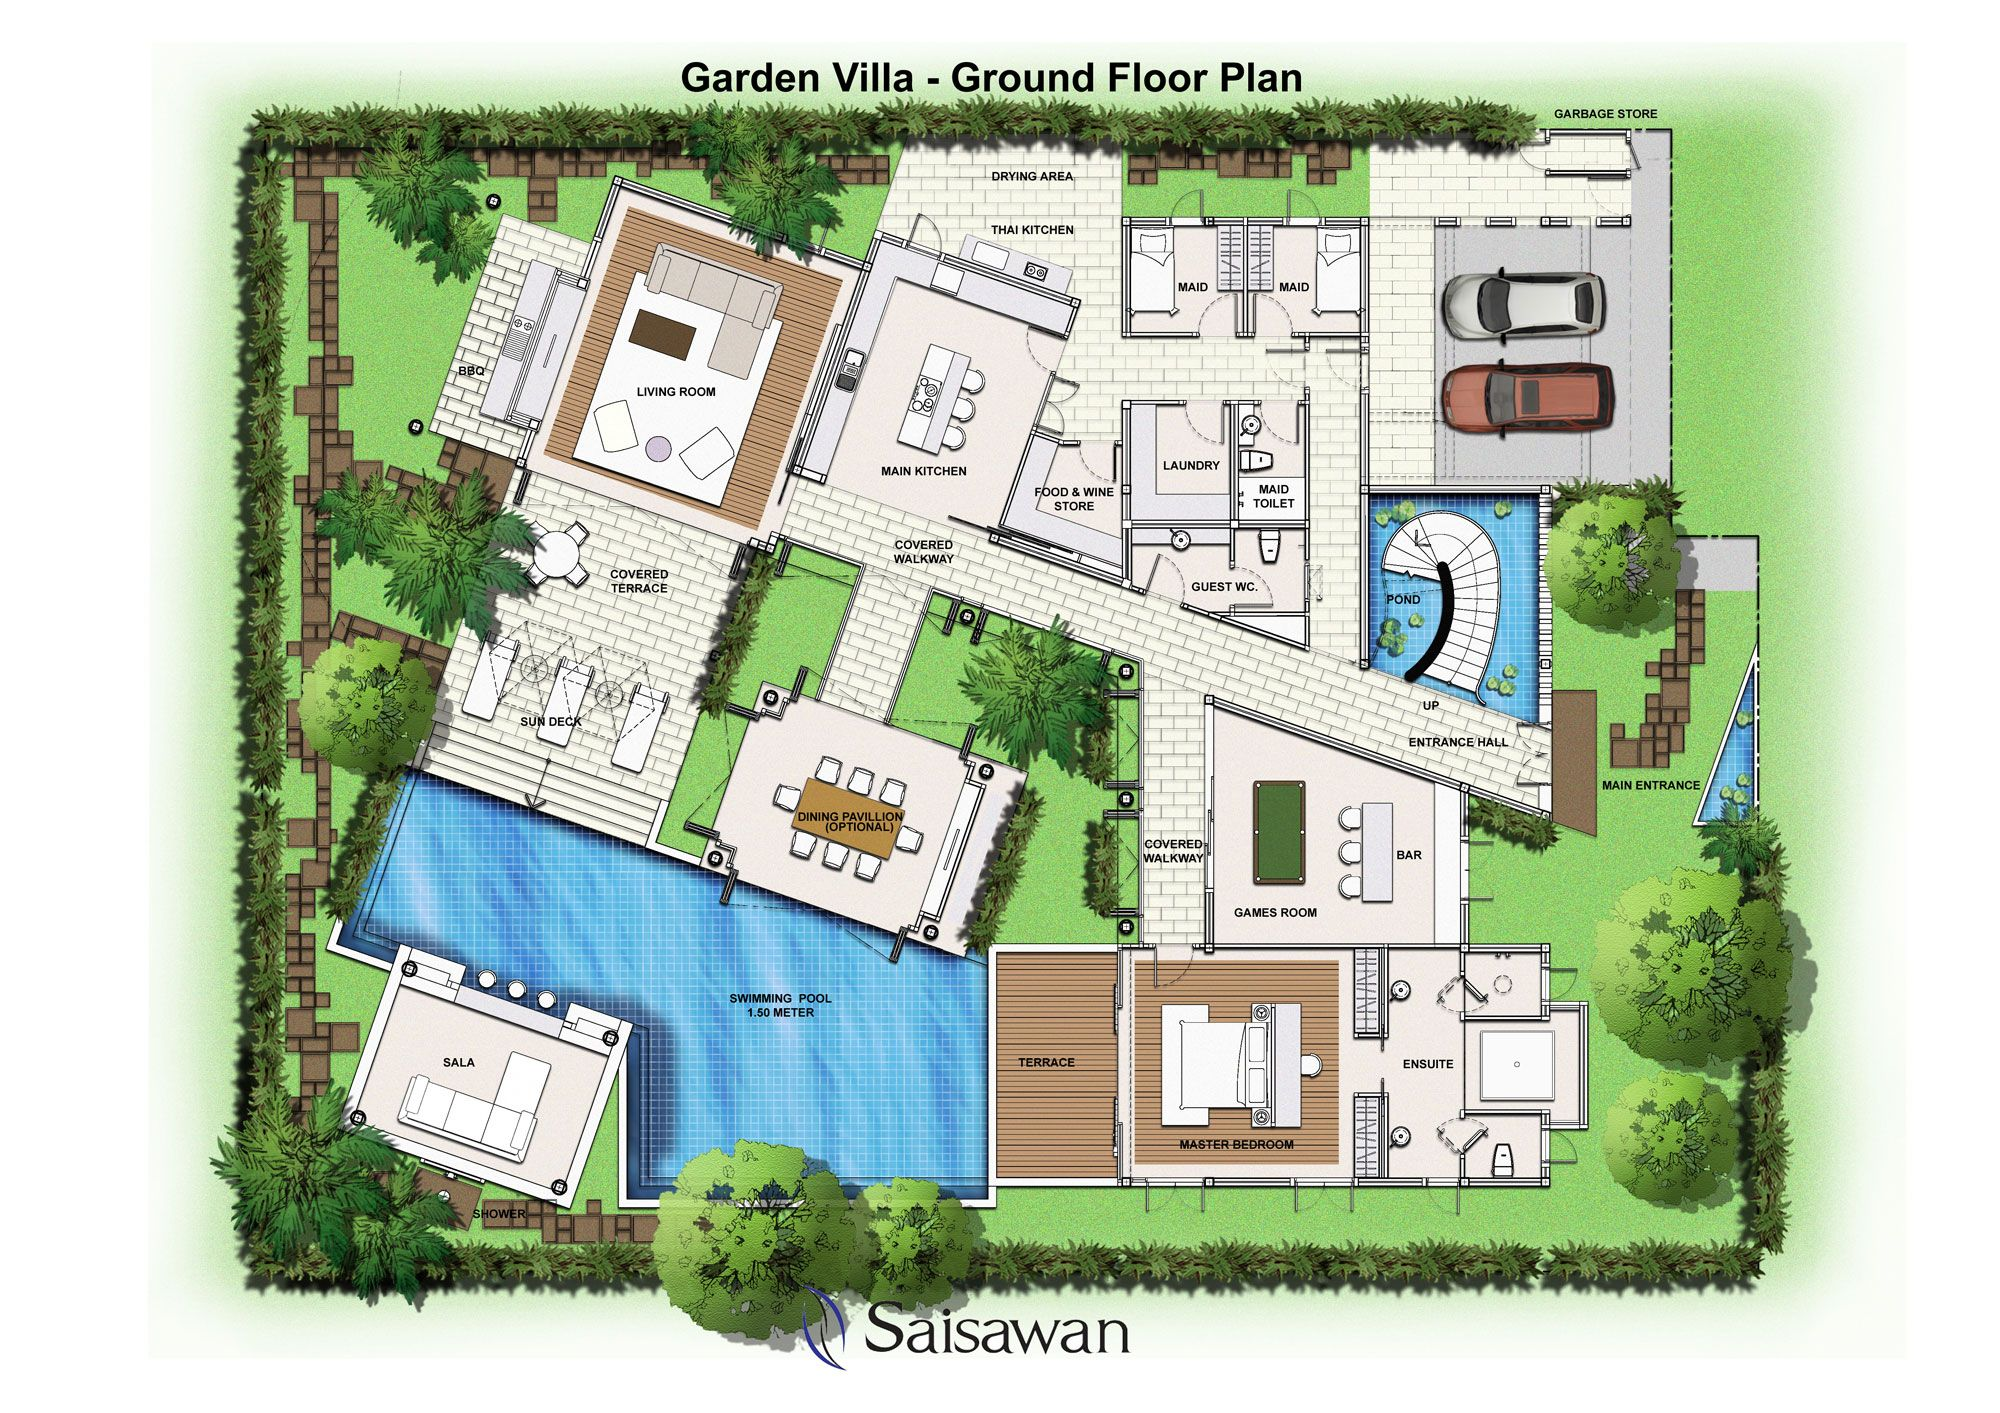 Saisawan garden villas ground floor plan house plans for Garden landscape plan